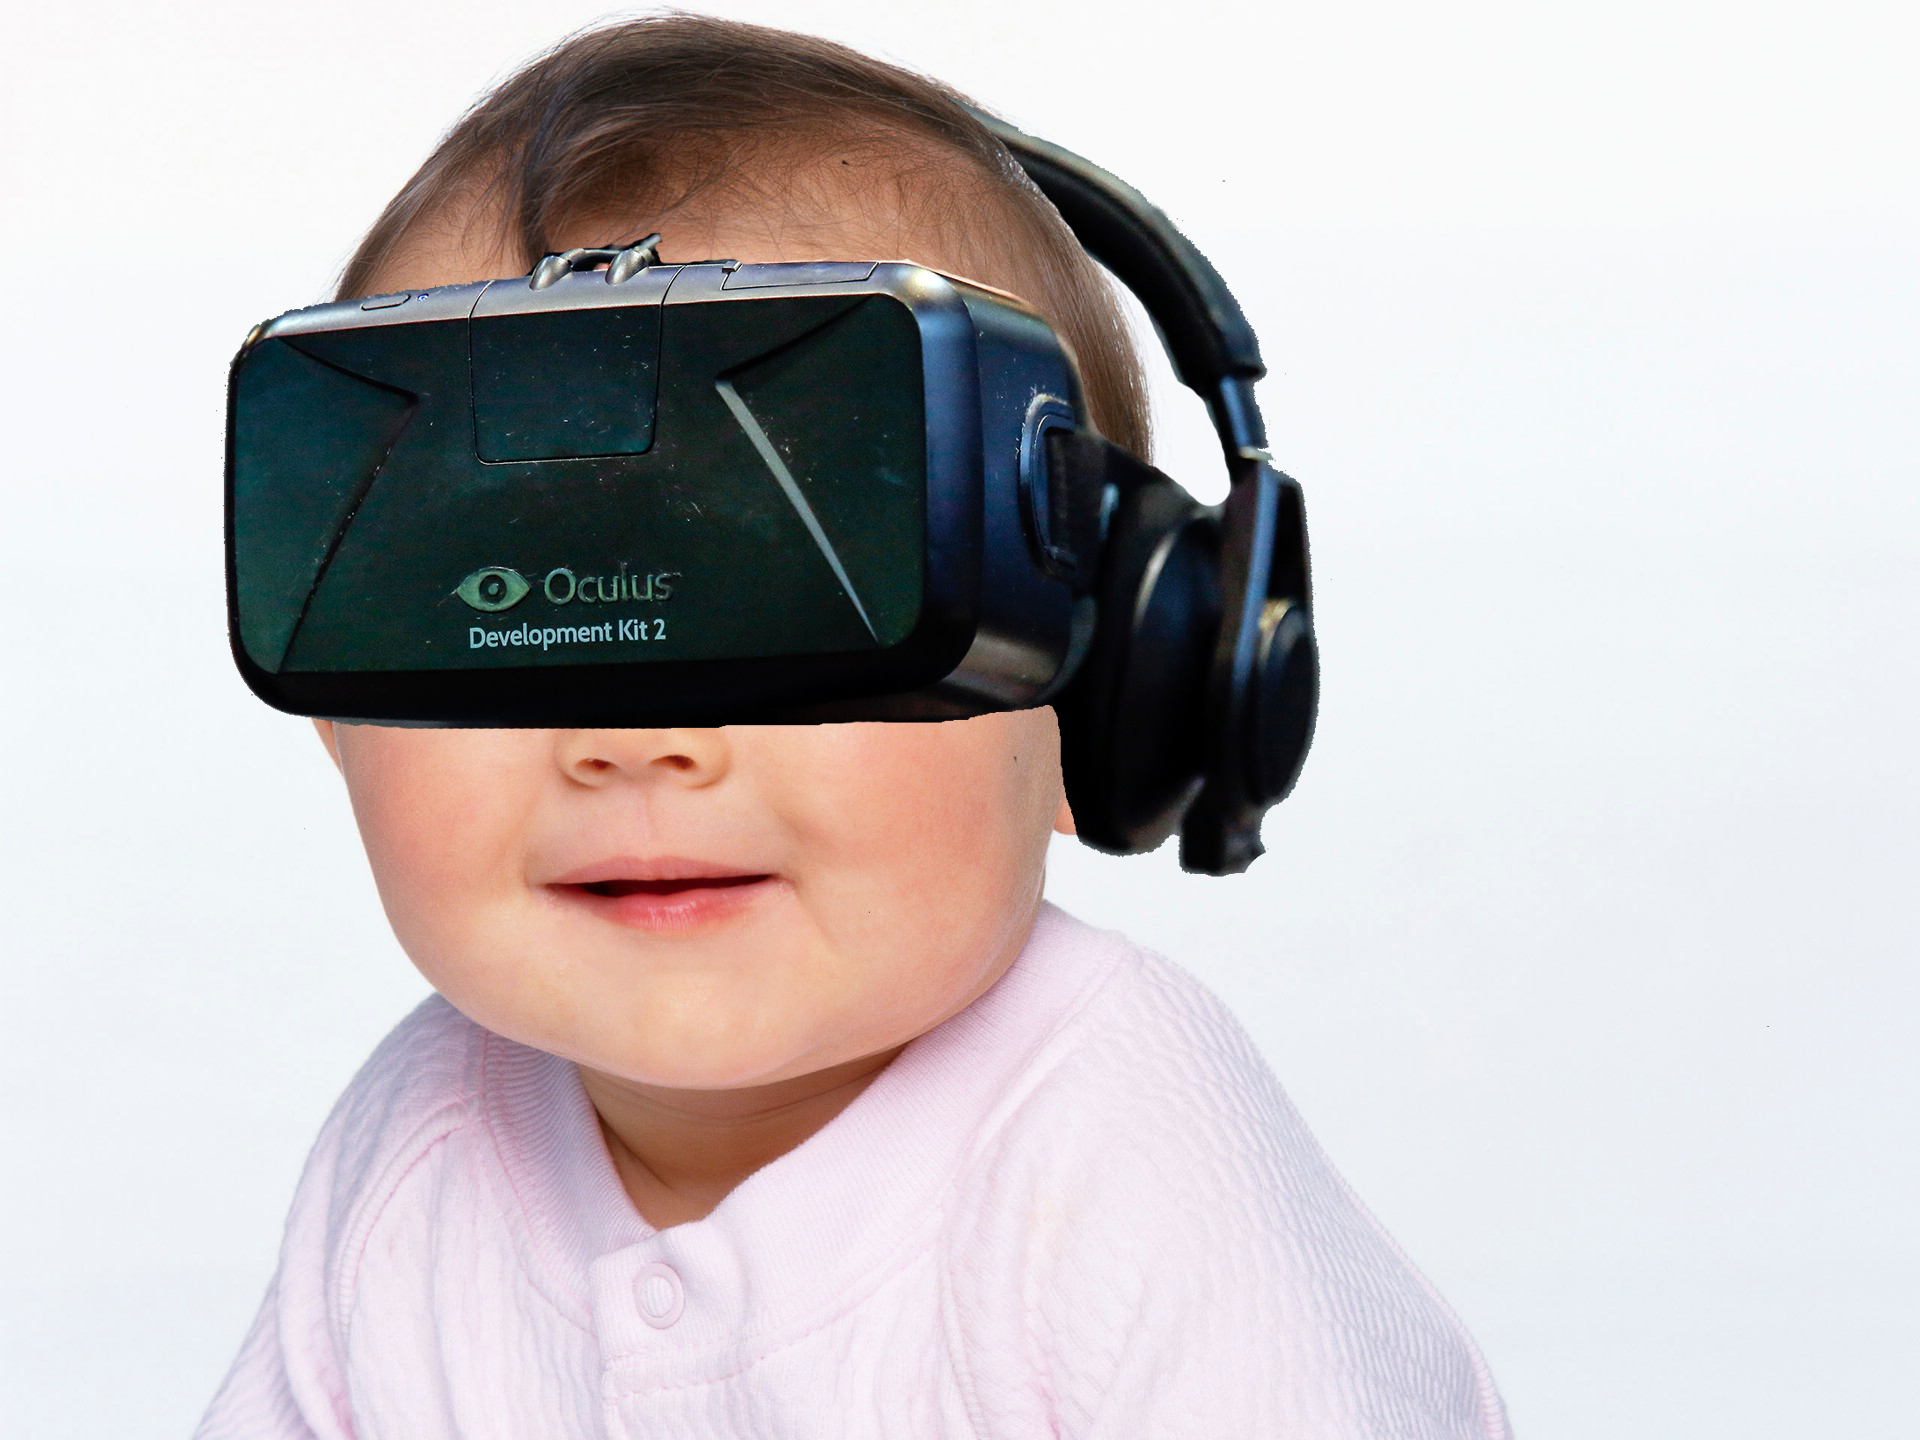 an analysis of the topic of virtual reality The post augmented and virtual reality market 2018 global analysis, opportunities and forecast to 2022 by wiseguy reports appeared first on herald keeper  topics no results found .